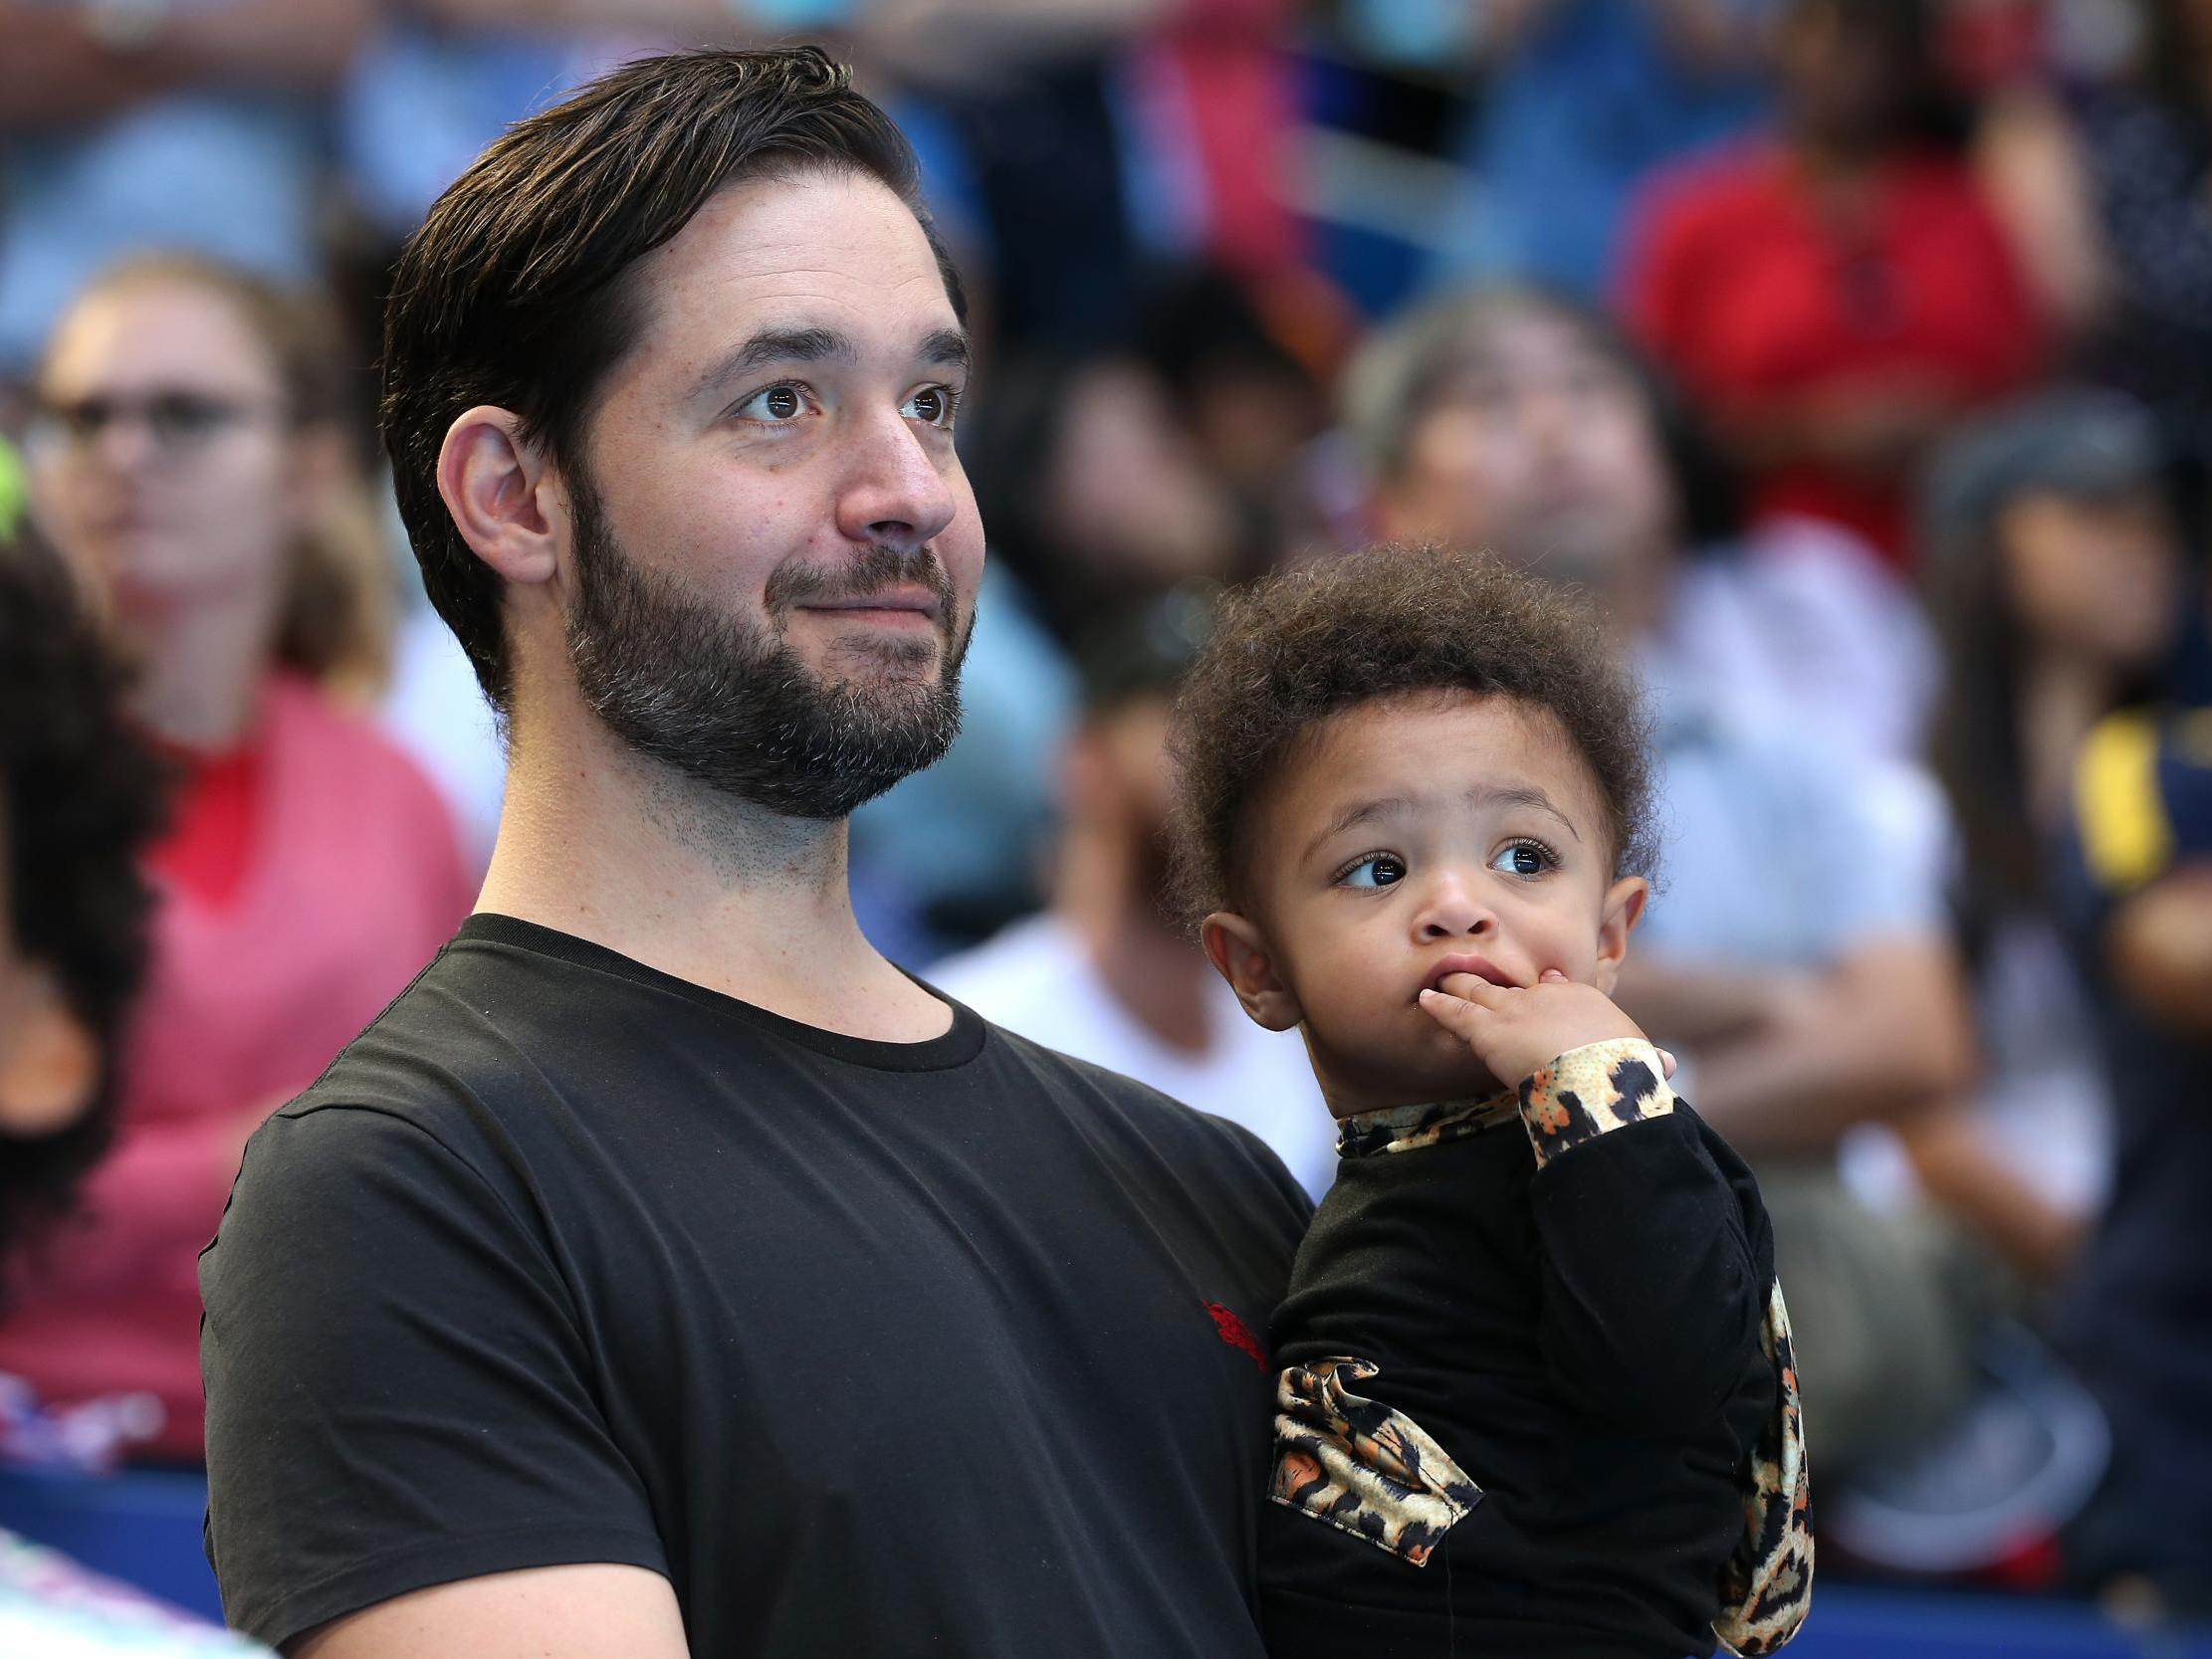 Alexis Ohanian shares sweet pictures of his and Serena Williams' daughter comparing her growth to a tree